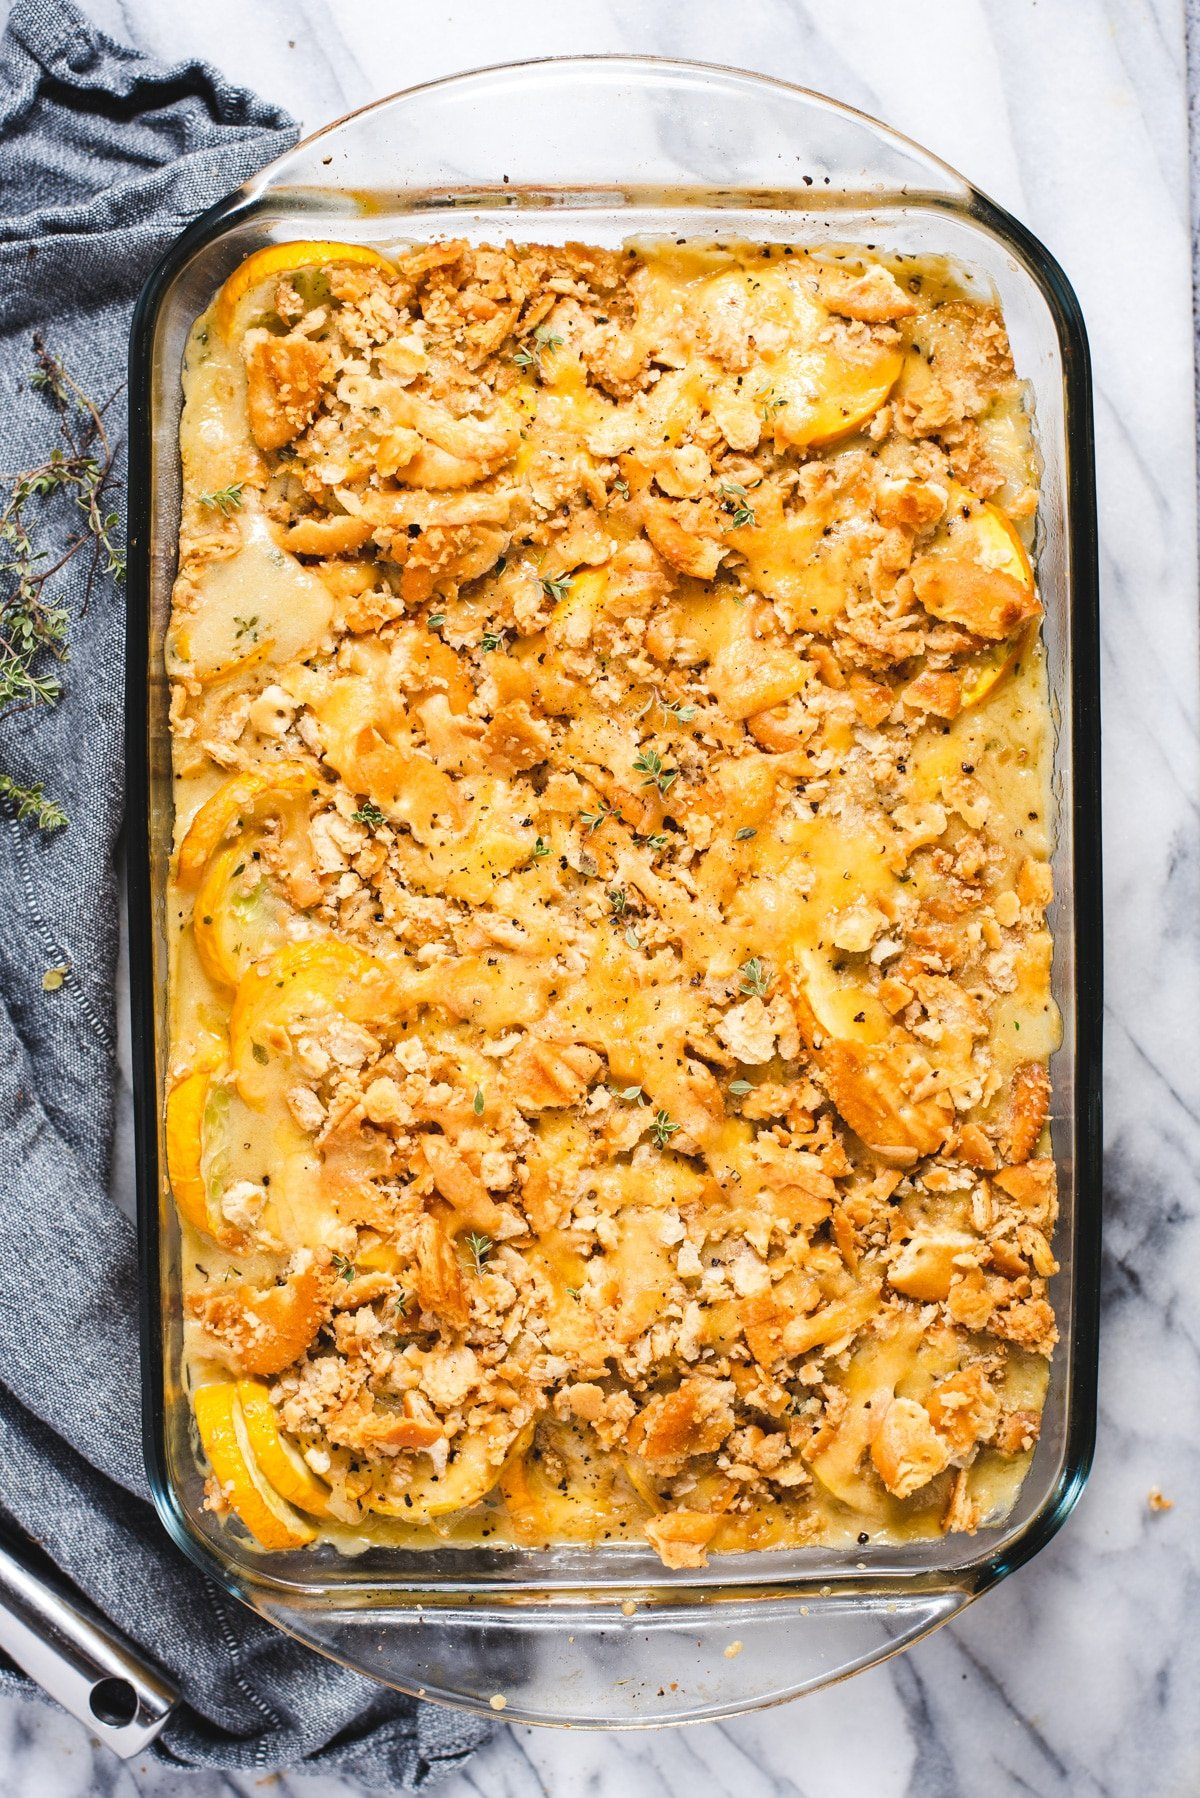 Overhead view of squash casserole in glass baking dish